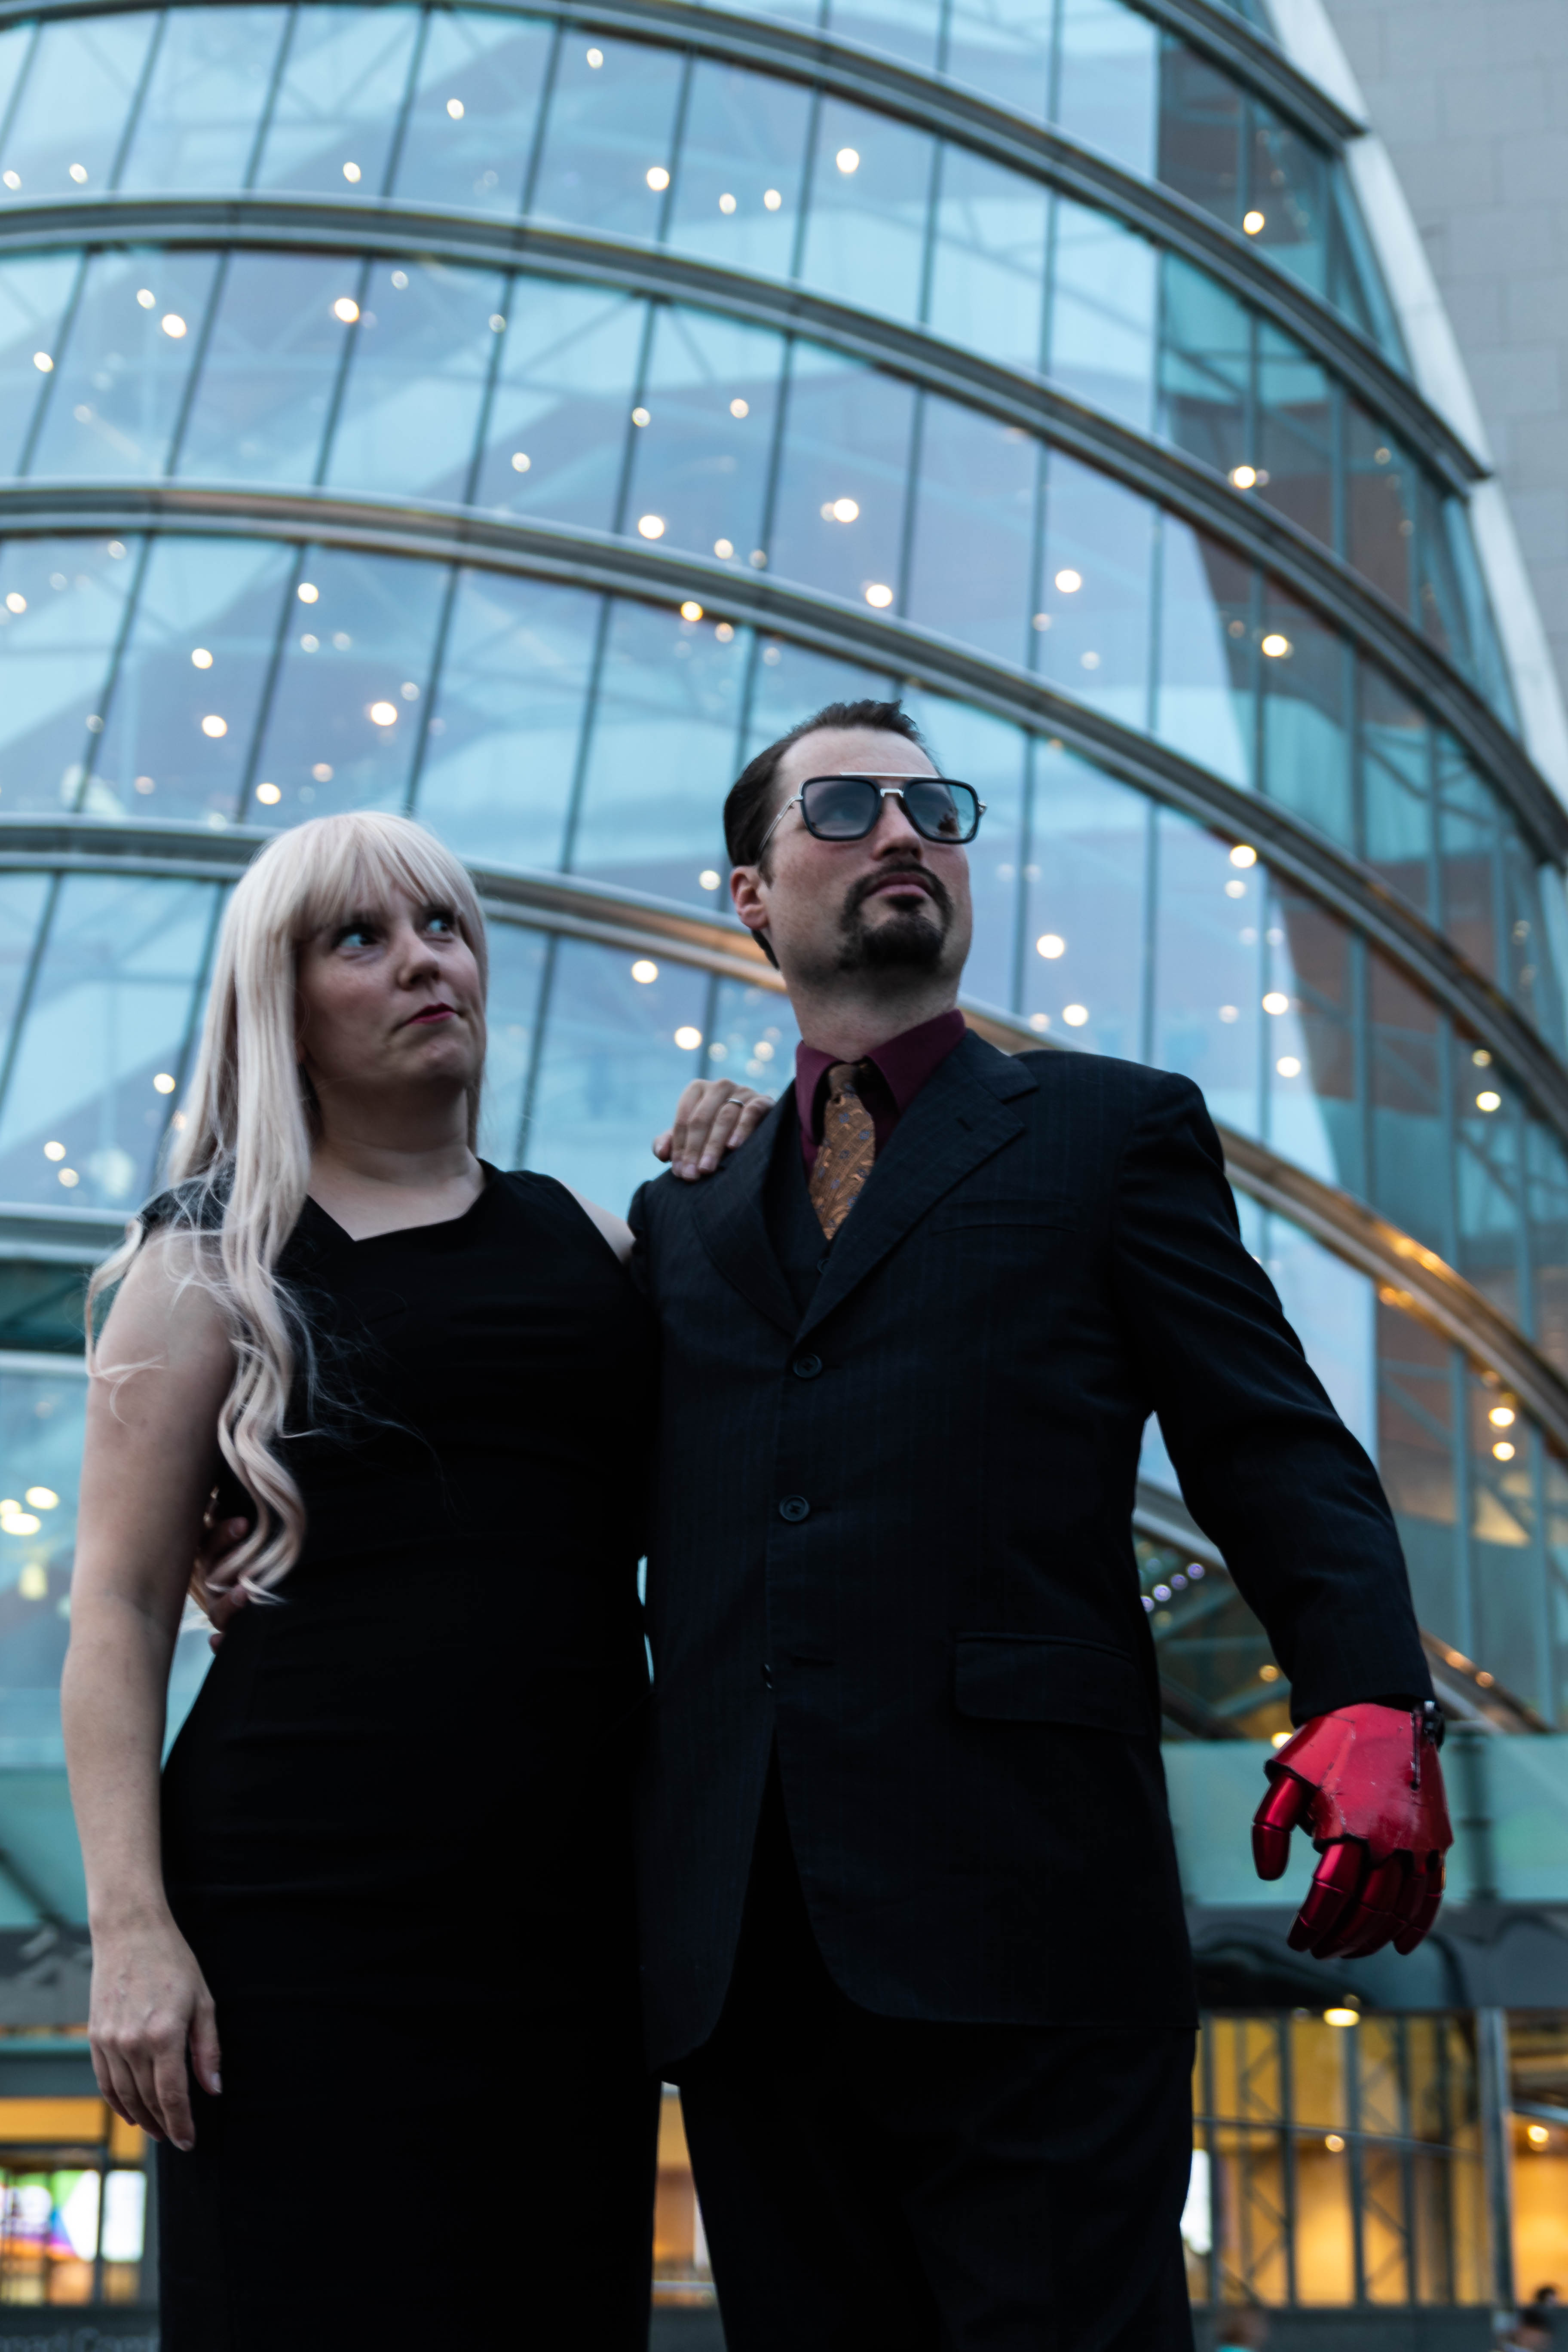 Cosplay Tony Stark and Pepper Potts outside the Dublin CCD